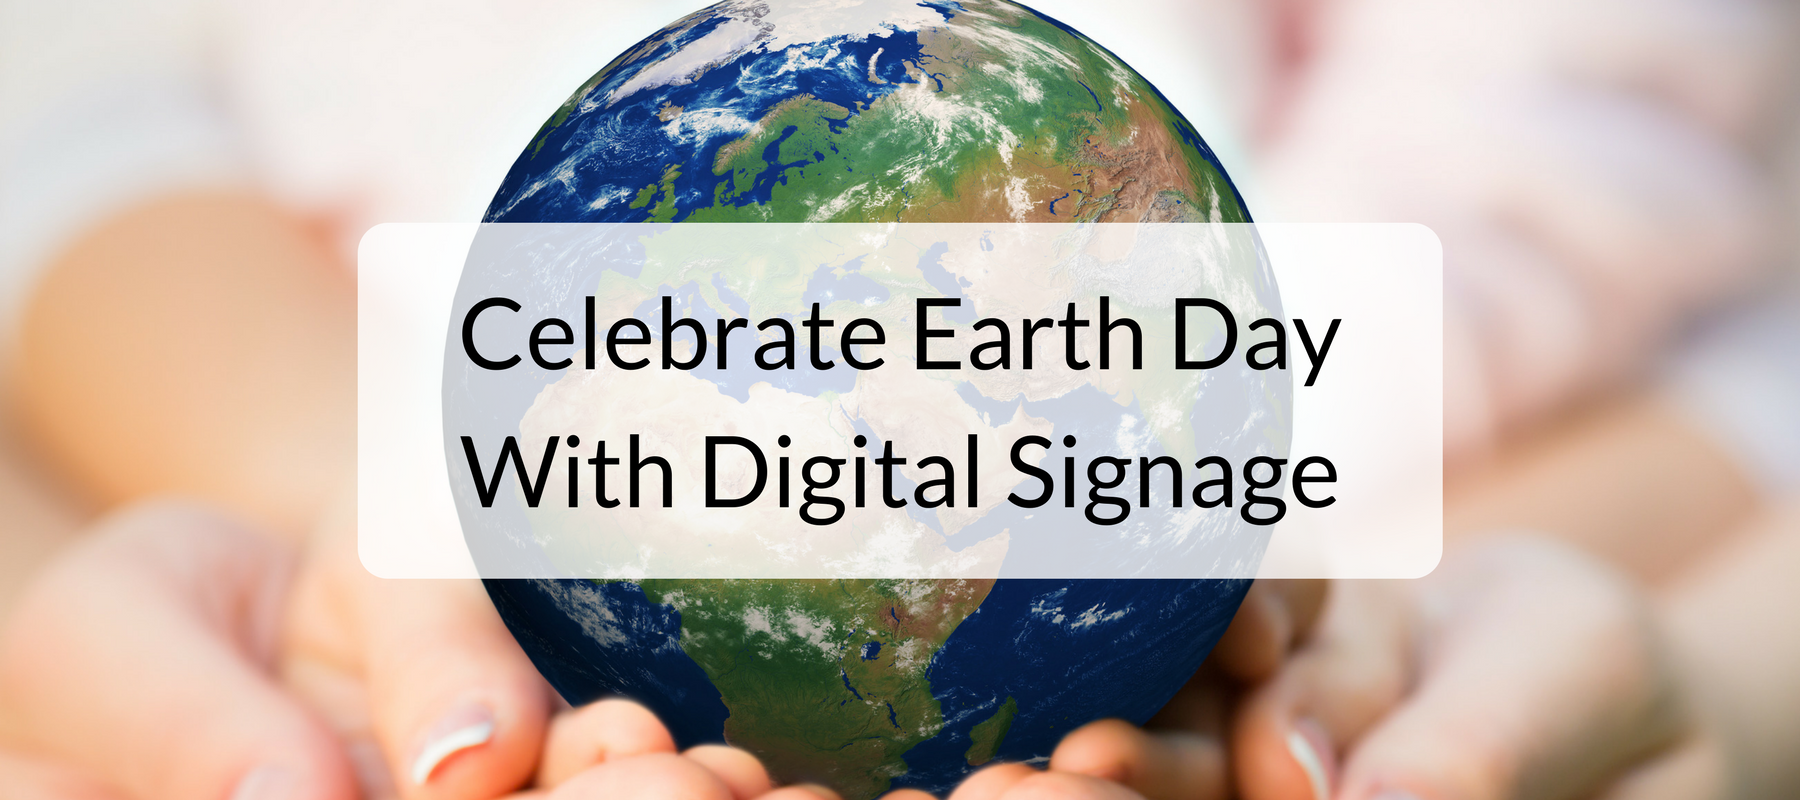 Celebrate Earth Day With Digital Signage